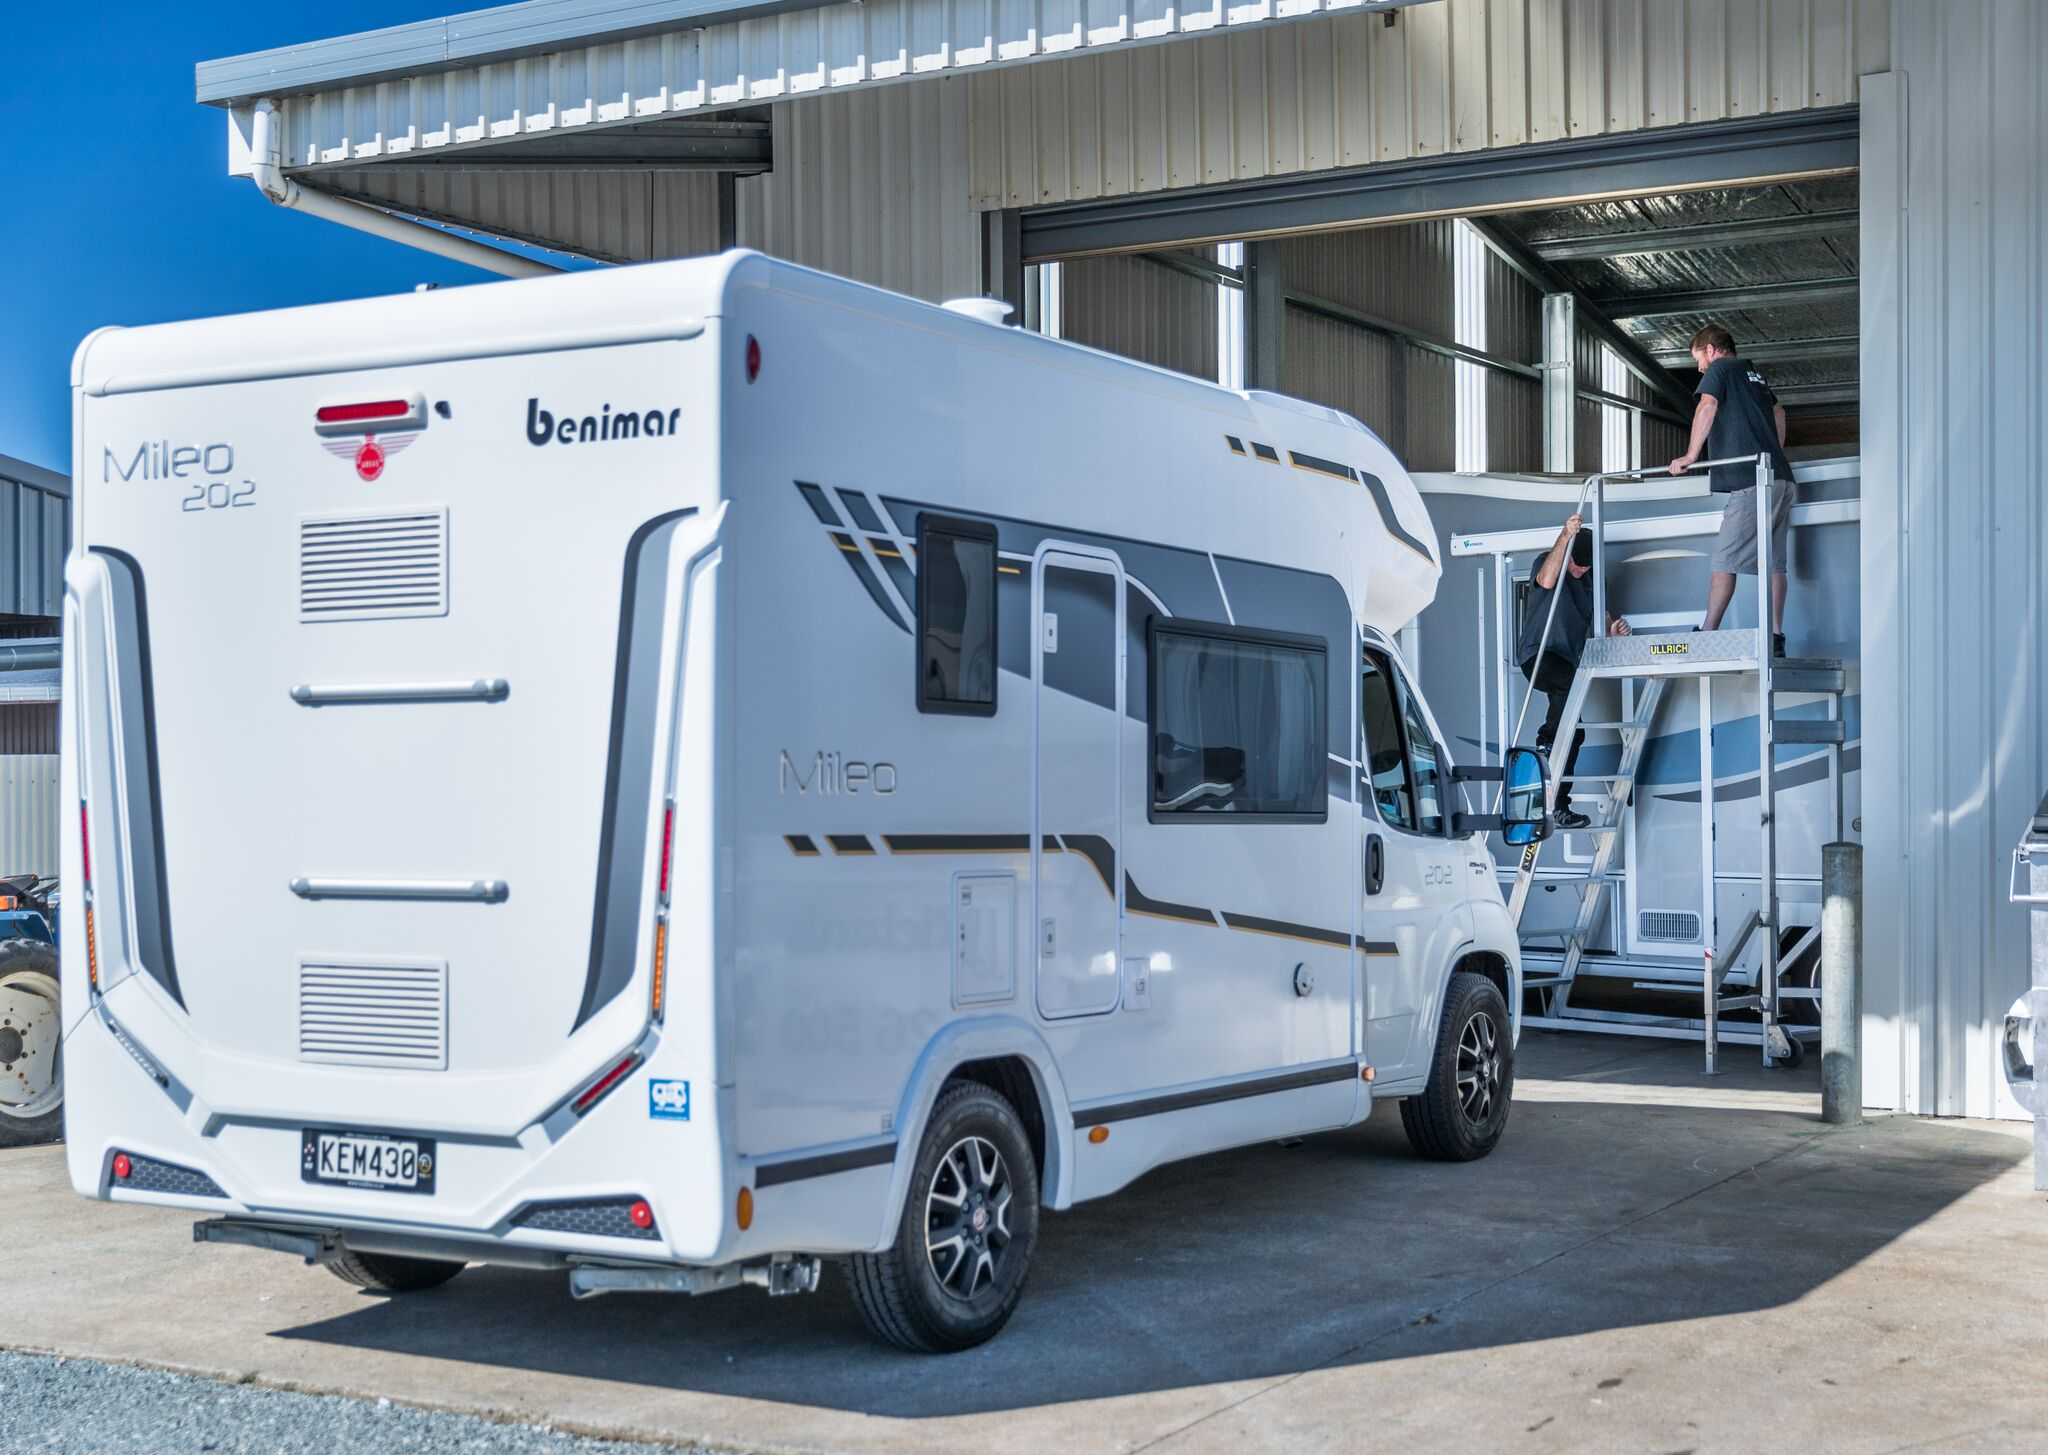 Motorhomes and caravans - what are the real costs?